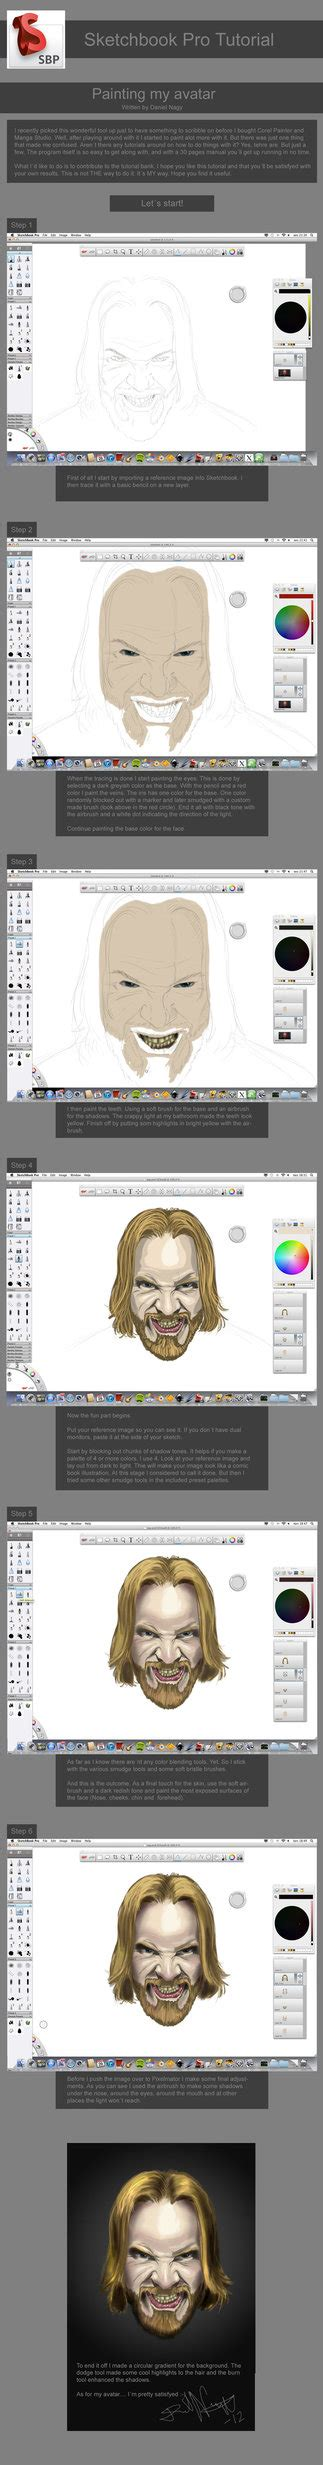 sketchbook pro painting tutorial sketchbook pro tutorial on painting a by danielbnagy